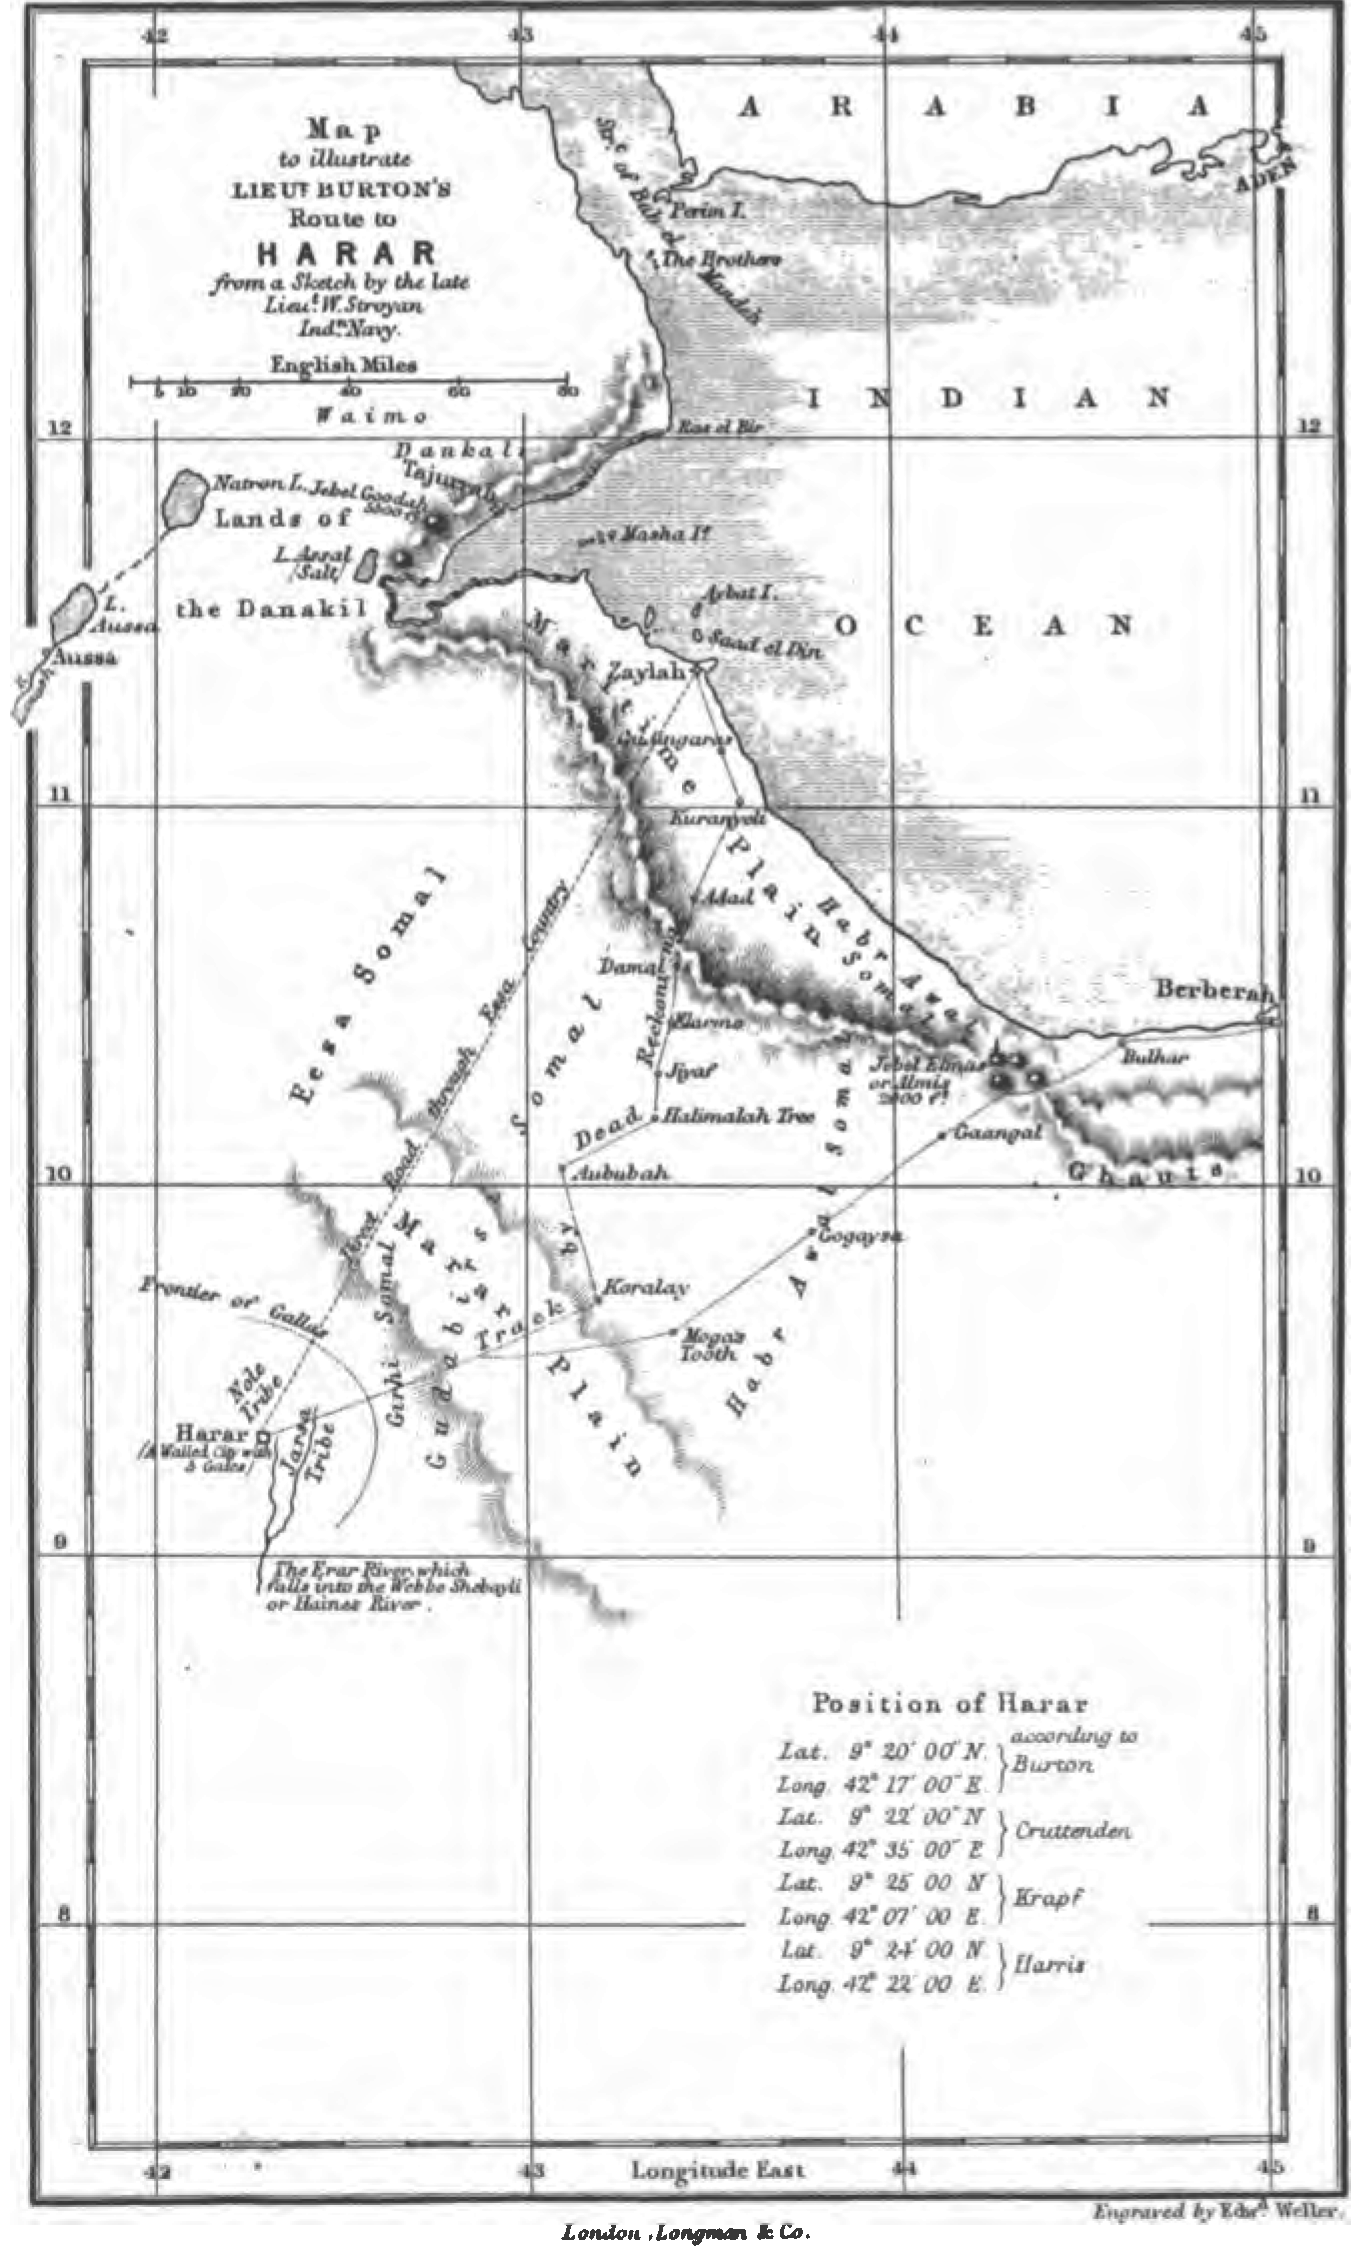 First footsteps in east africa by richard burton map to illustrate lieut burtons route to harar from a sketch by the late lieut w stroyan indian navy buycottarizona